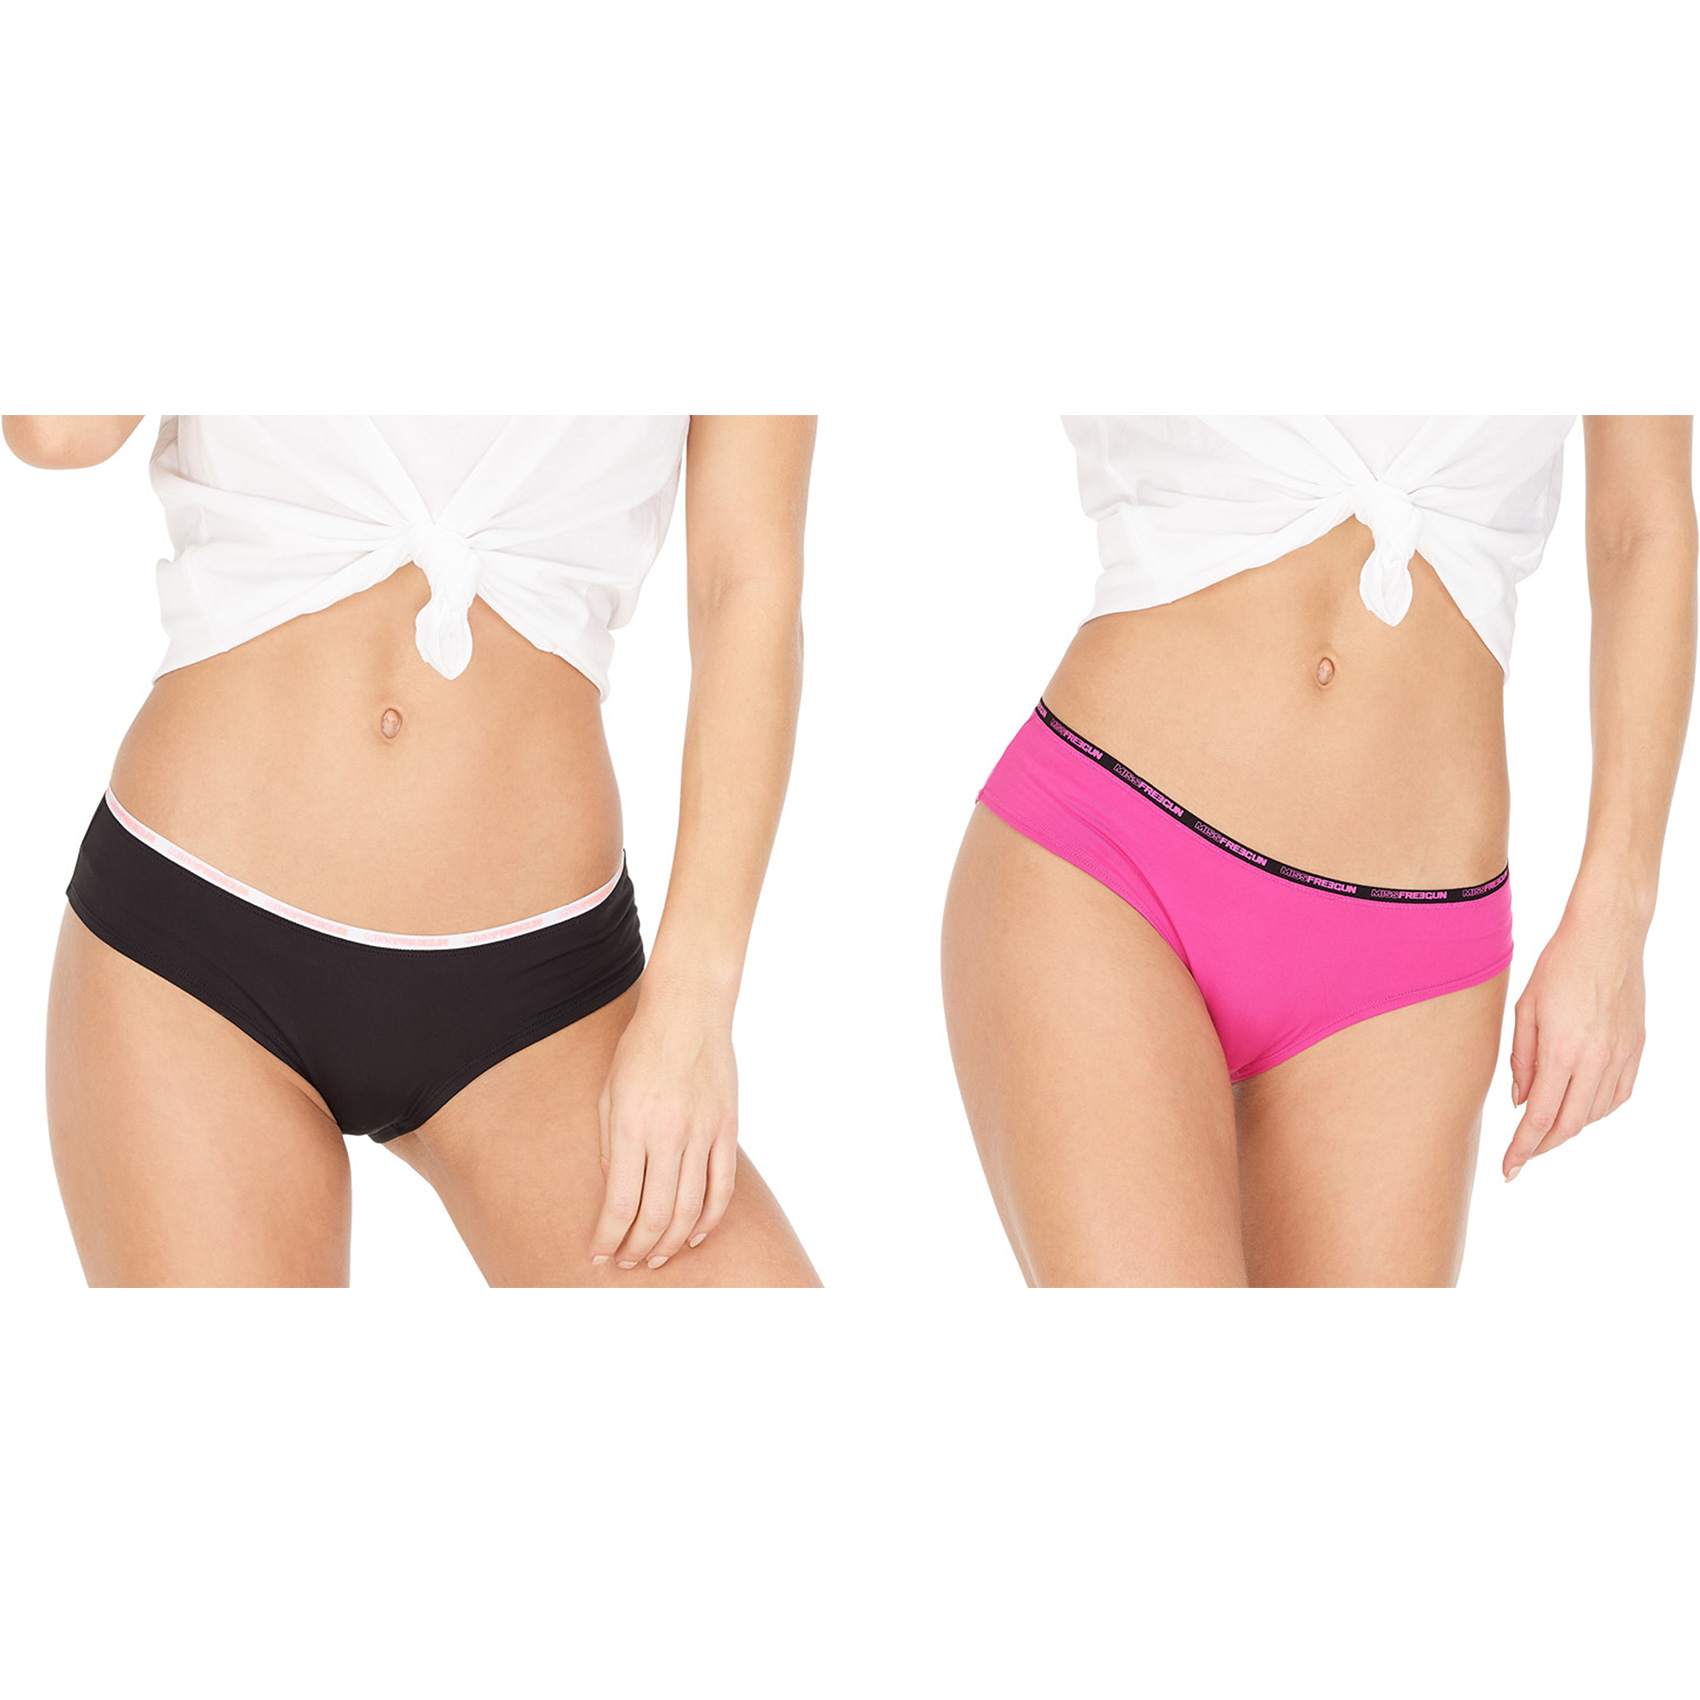 Lot de 2 boxers femme miss freegun noir et rose (photo)